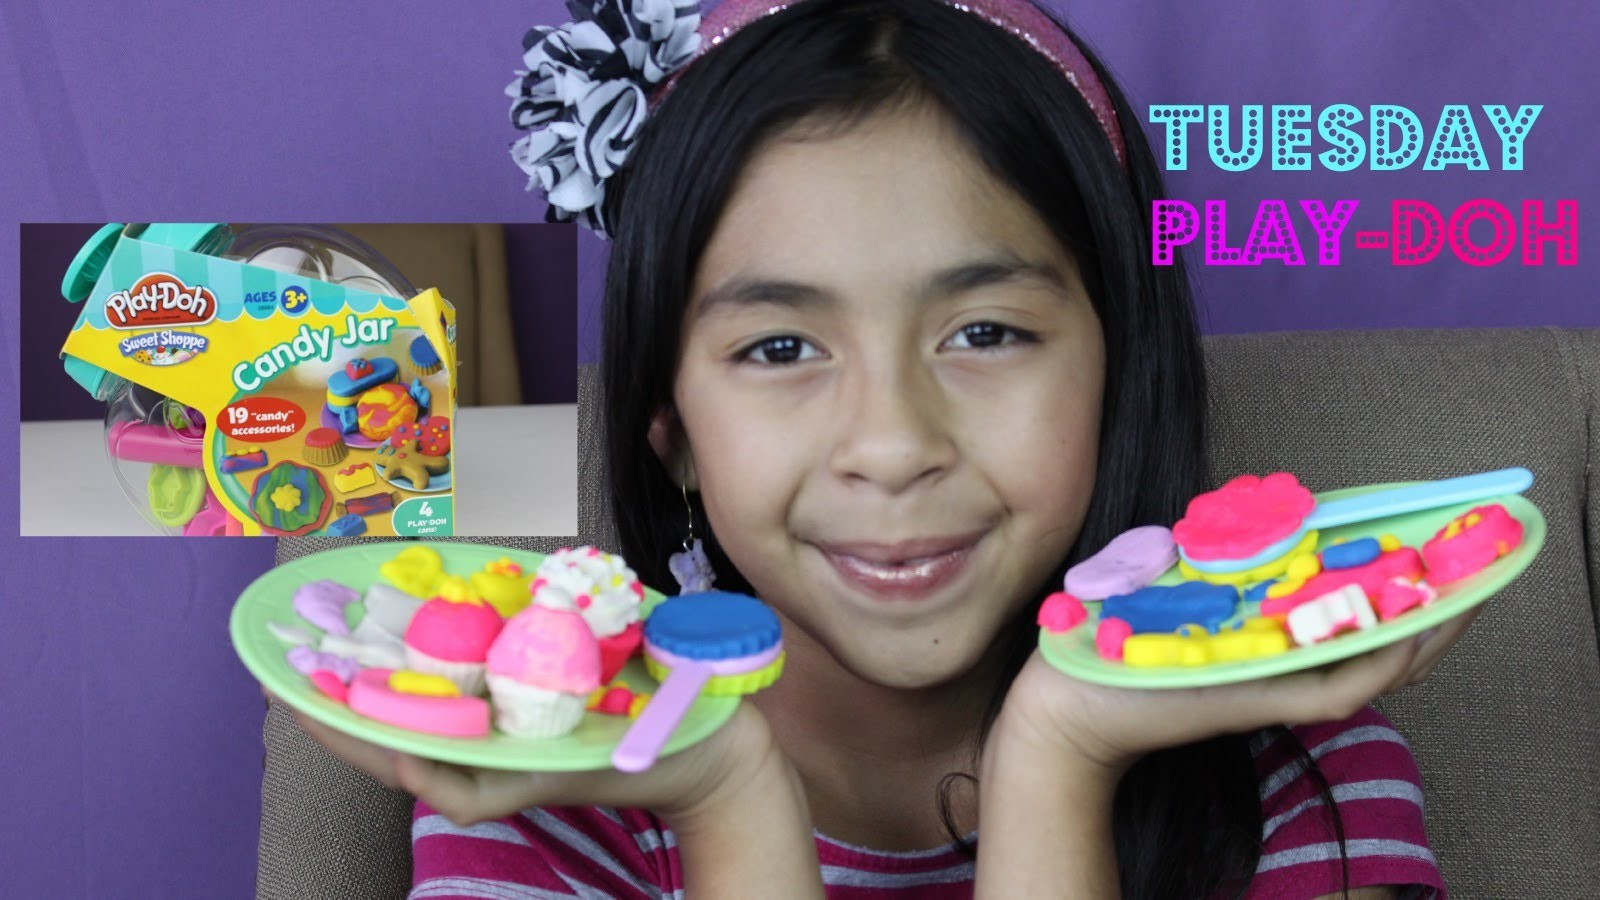 PLAY DOH Candy Jar,Make Cupcakes, Ice Cream, Lollipops-Tuesday Play Doh|B2cutecupcakes